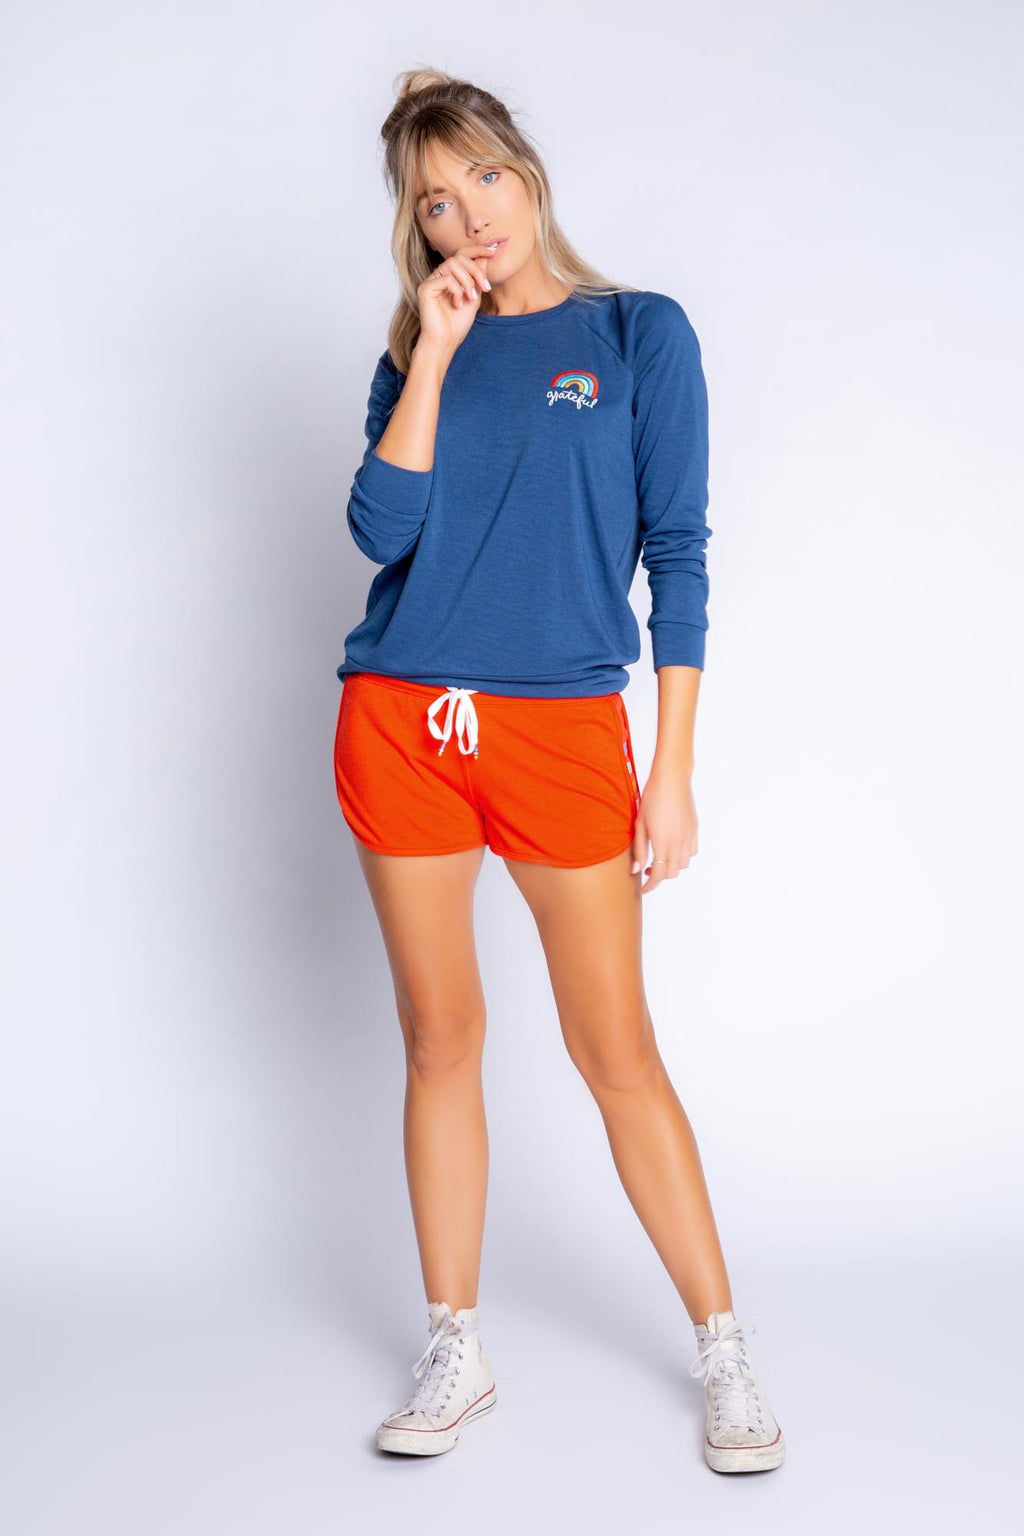 Retro Lounge Long Sleeve Top | Navy